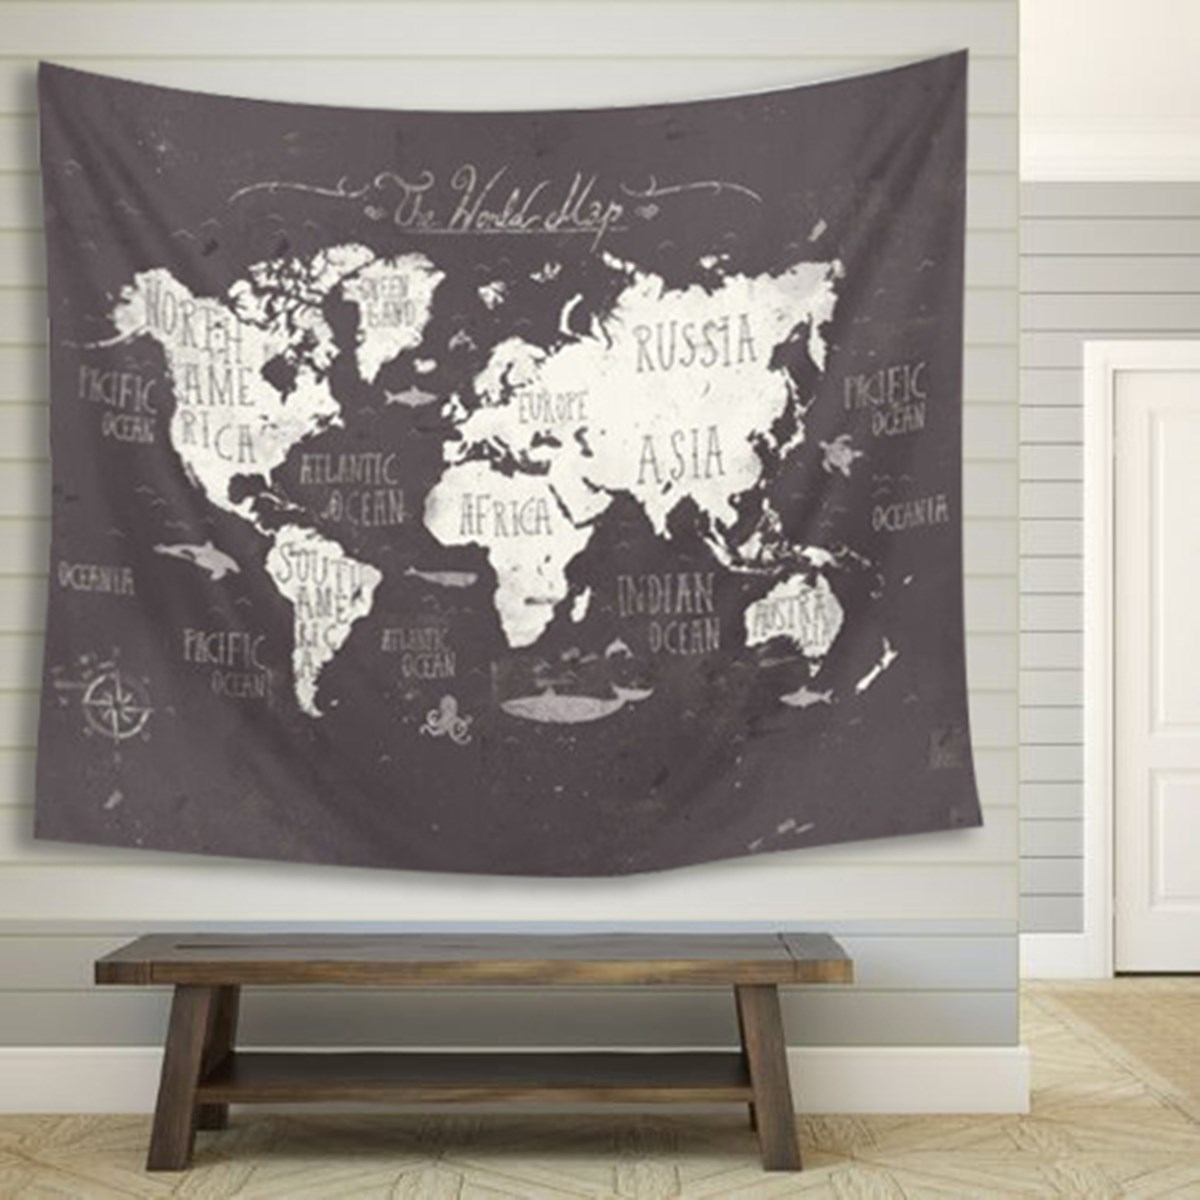 World map indian mandala wall hanging tapestry 150x130cm yoga mat world map indian mandala wall hanging tapestry 150x130cm yoga mat throw blanket cloth home living room art wall decor mural in tapestry from home garden gumiabroncs Gallery